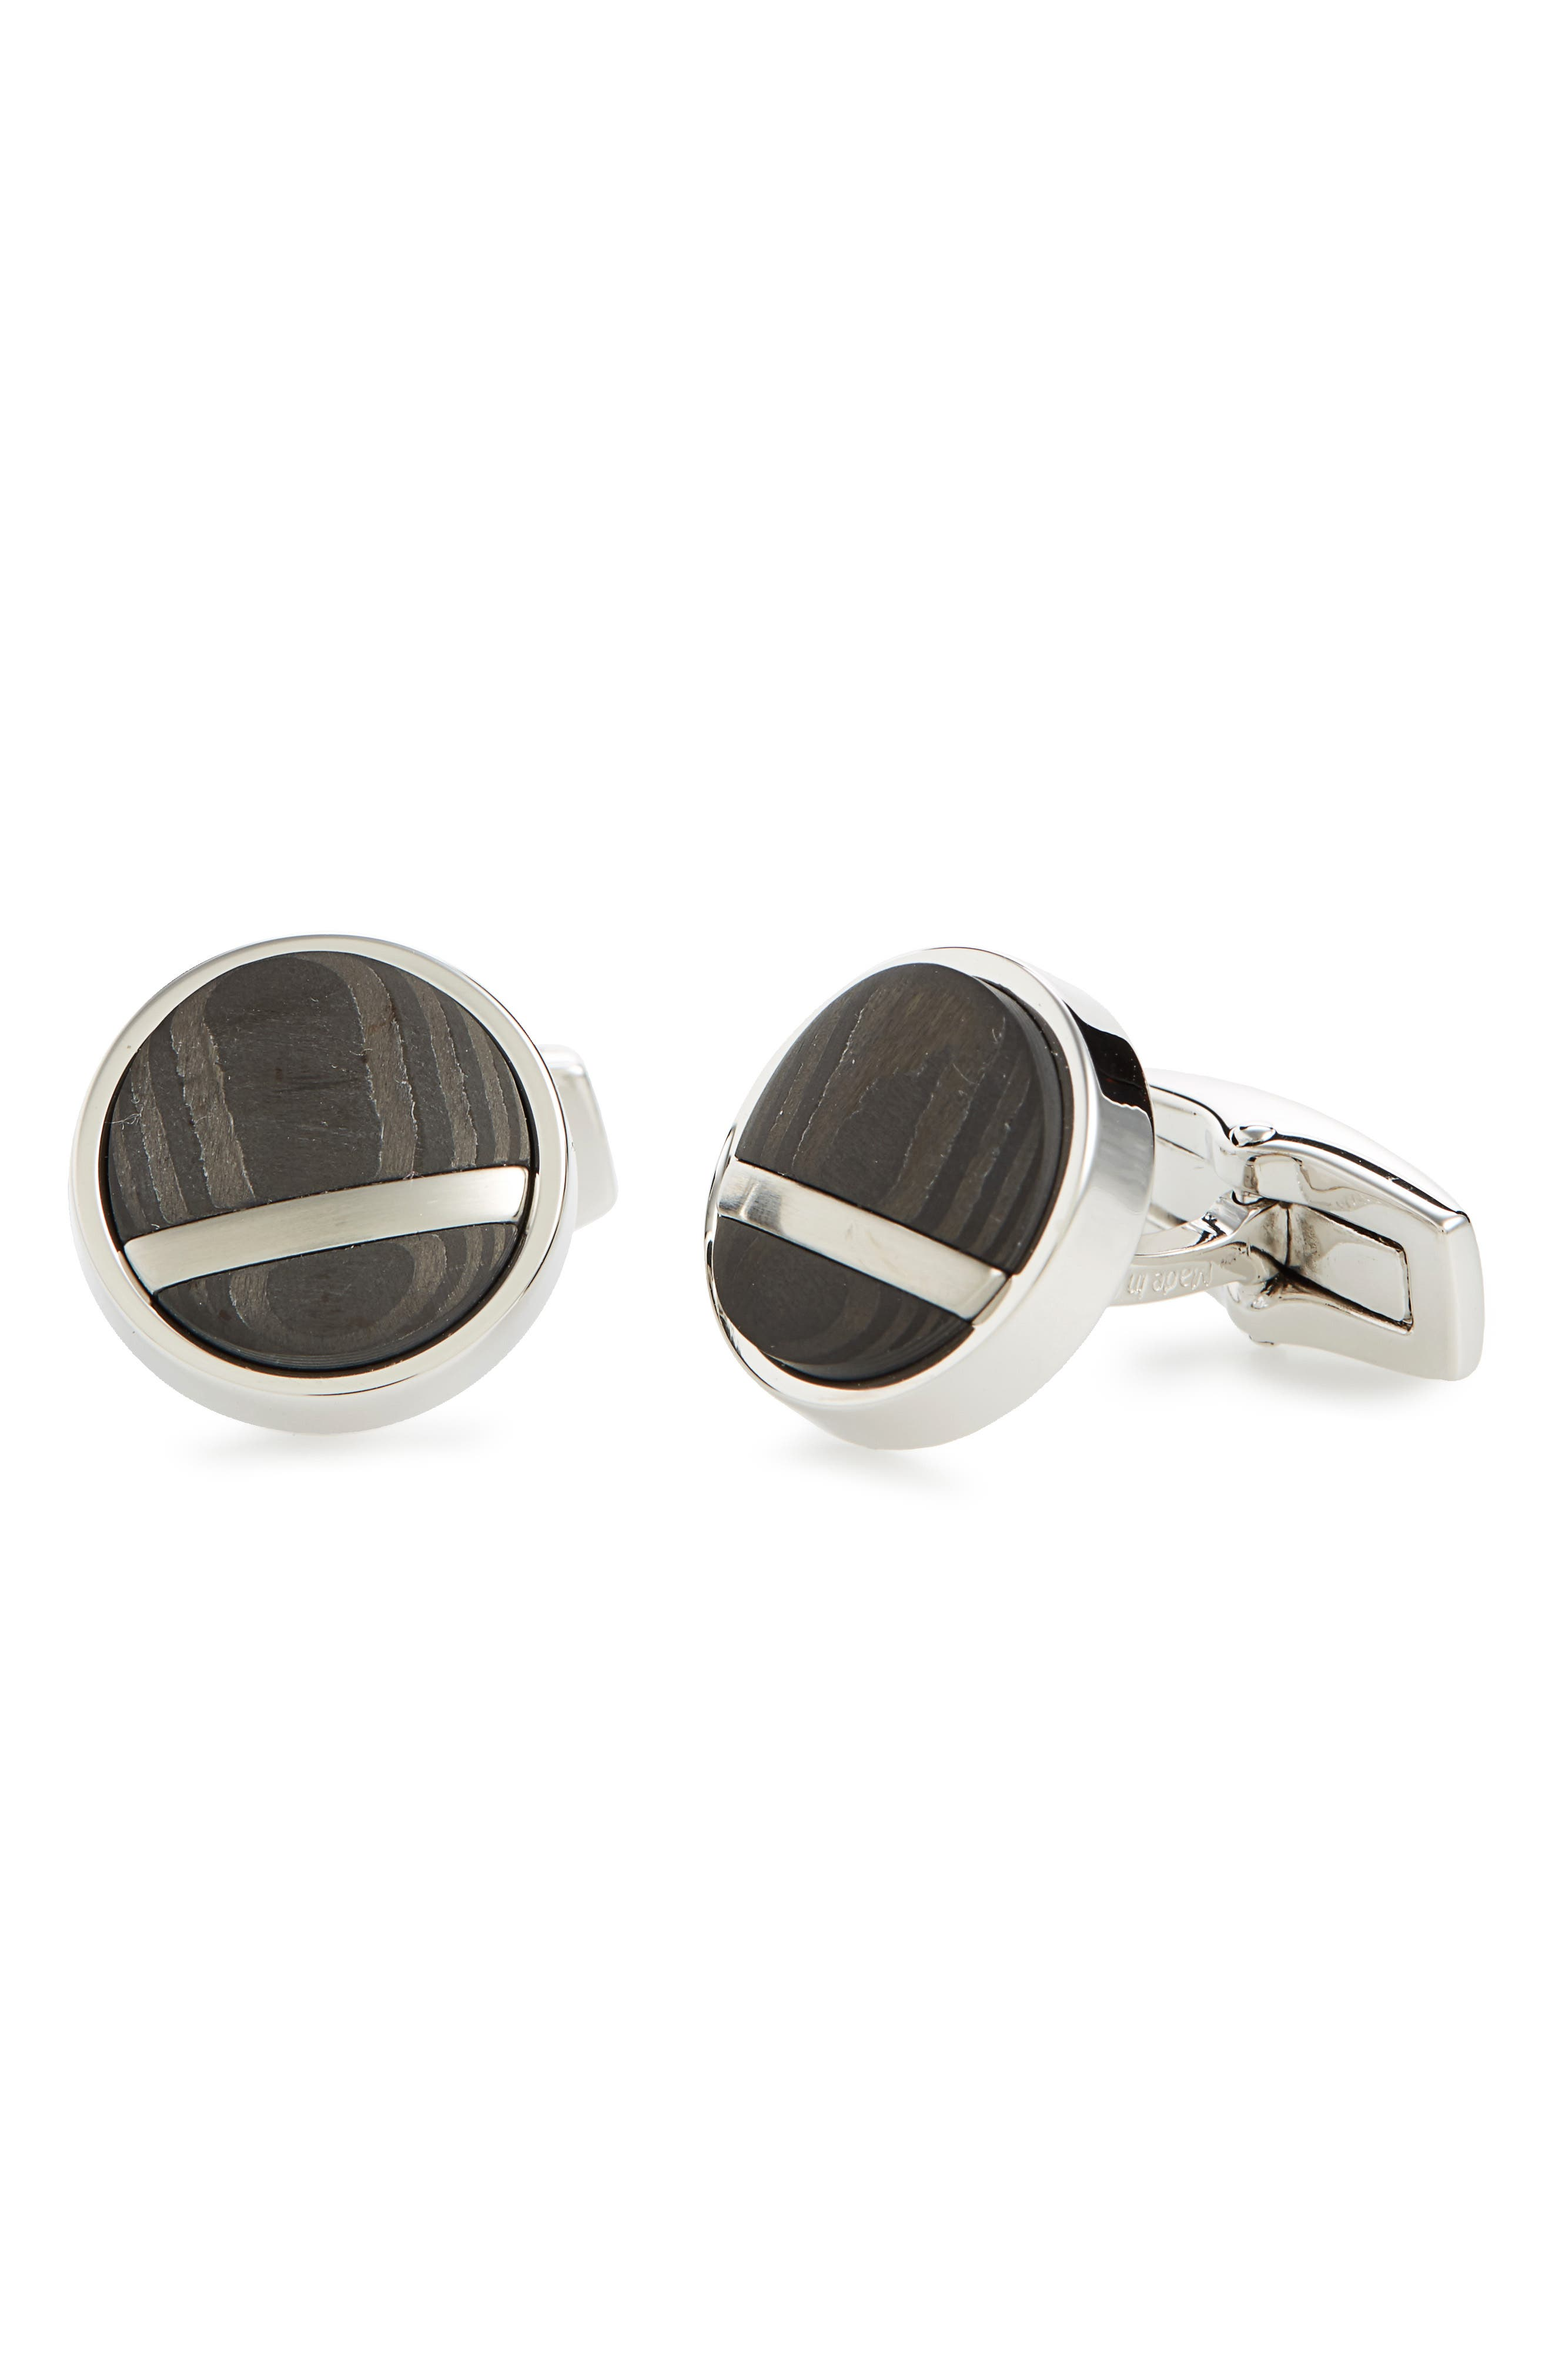 T-Ralph Round Cuff Links,                             Main thumbnail 1, color,                             021